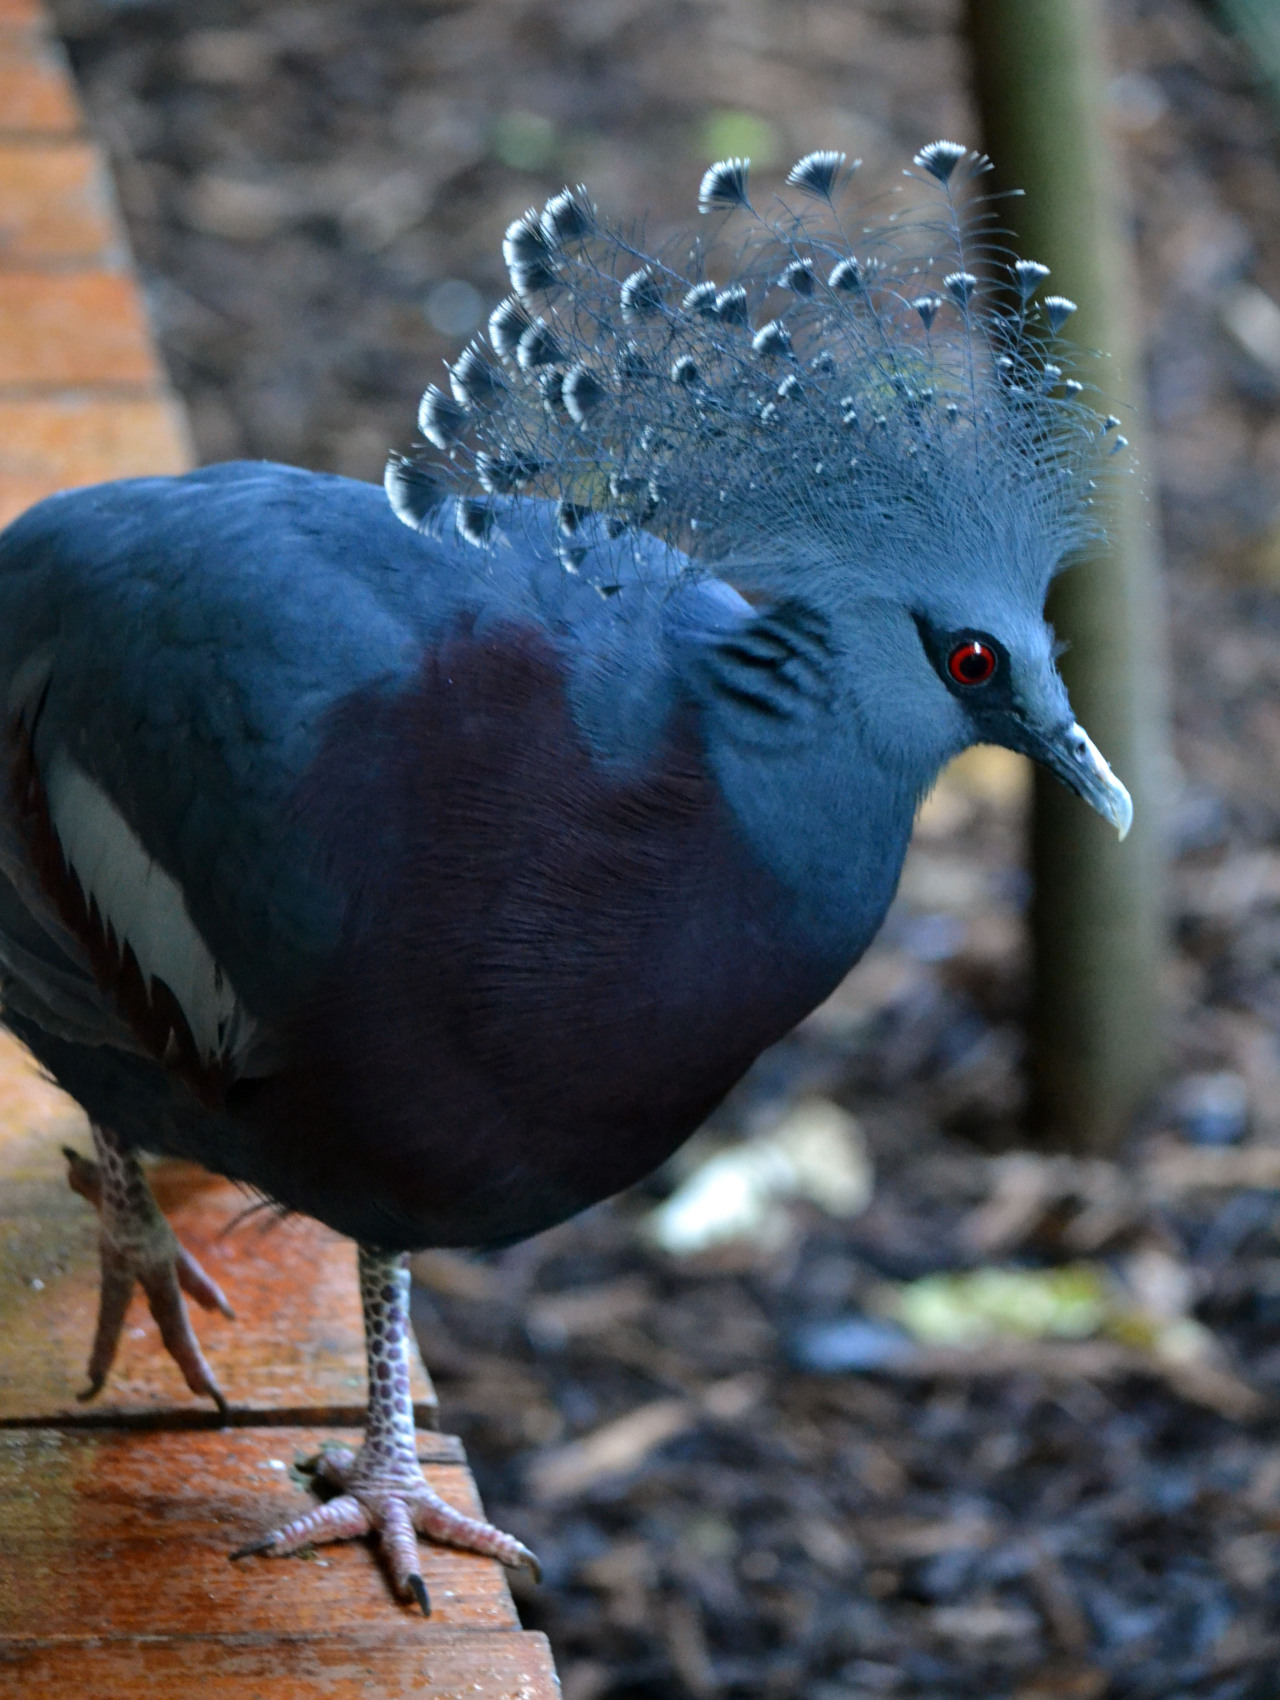 photographersdirectory:  Victoria Crowned Pigeon I'm relatively new to photography, having only just acquired my first camera. Wildlife and nature are passions of mine. So, naturally my photographic instincts turn my camera towards  animals, birds, and plants. Armed with a D3100, and various lenses, I can usually be found crawling around in the bushes whilst stalking various creatures. Tumblr | Flickr